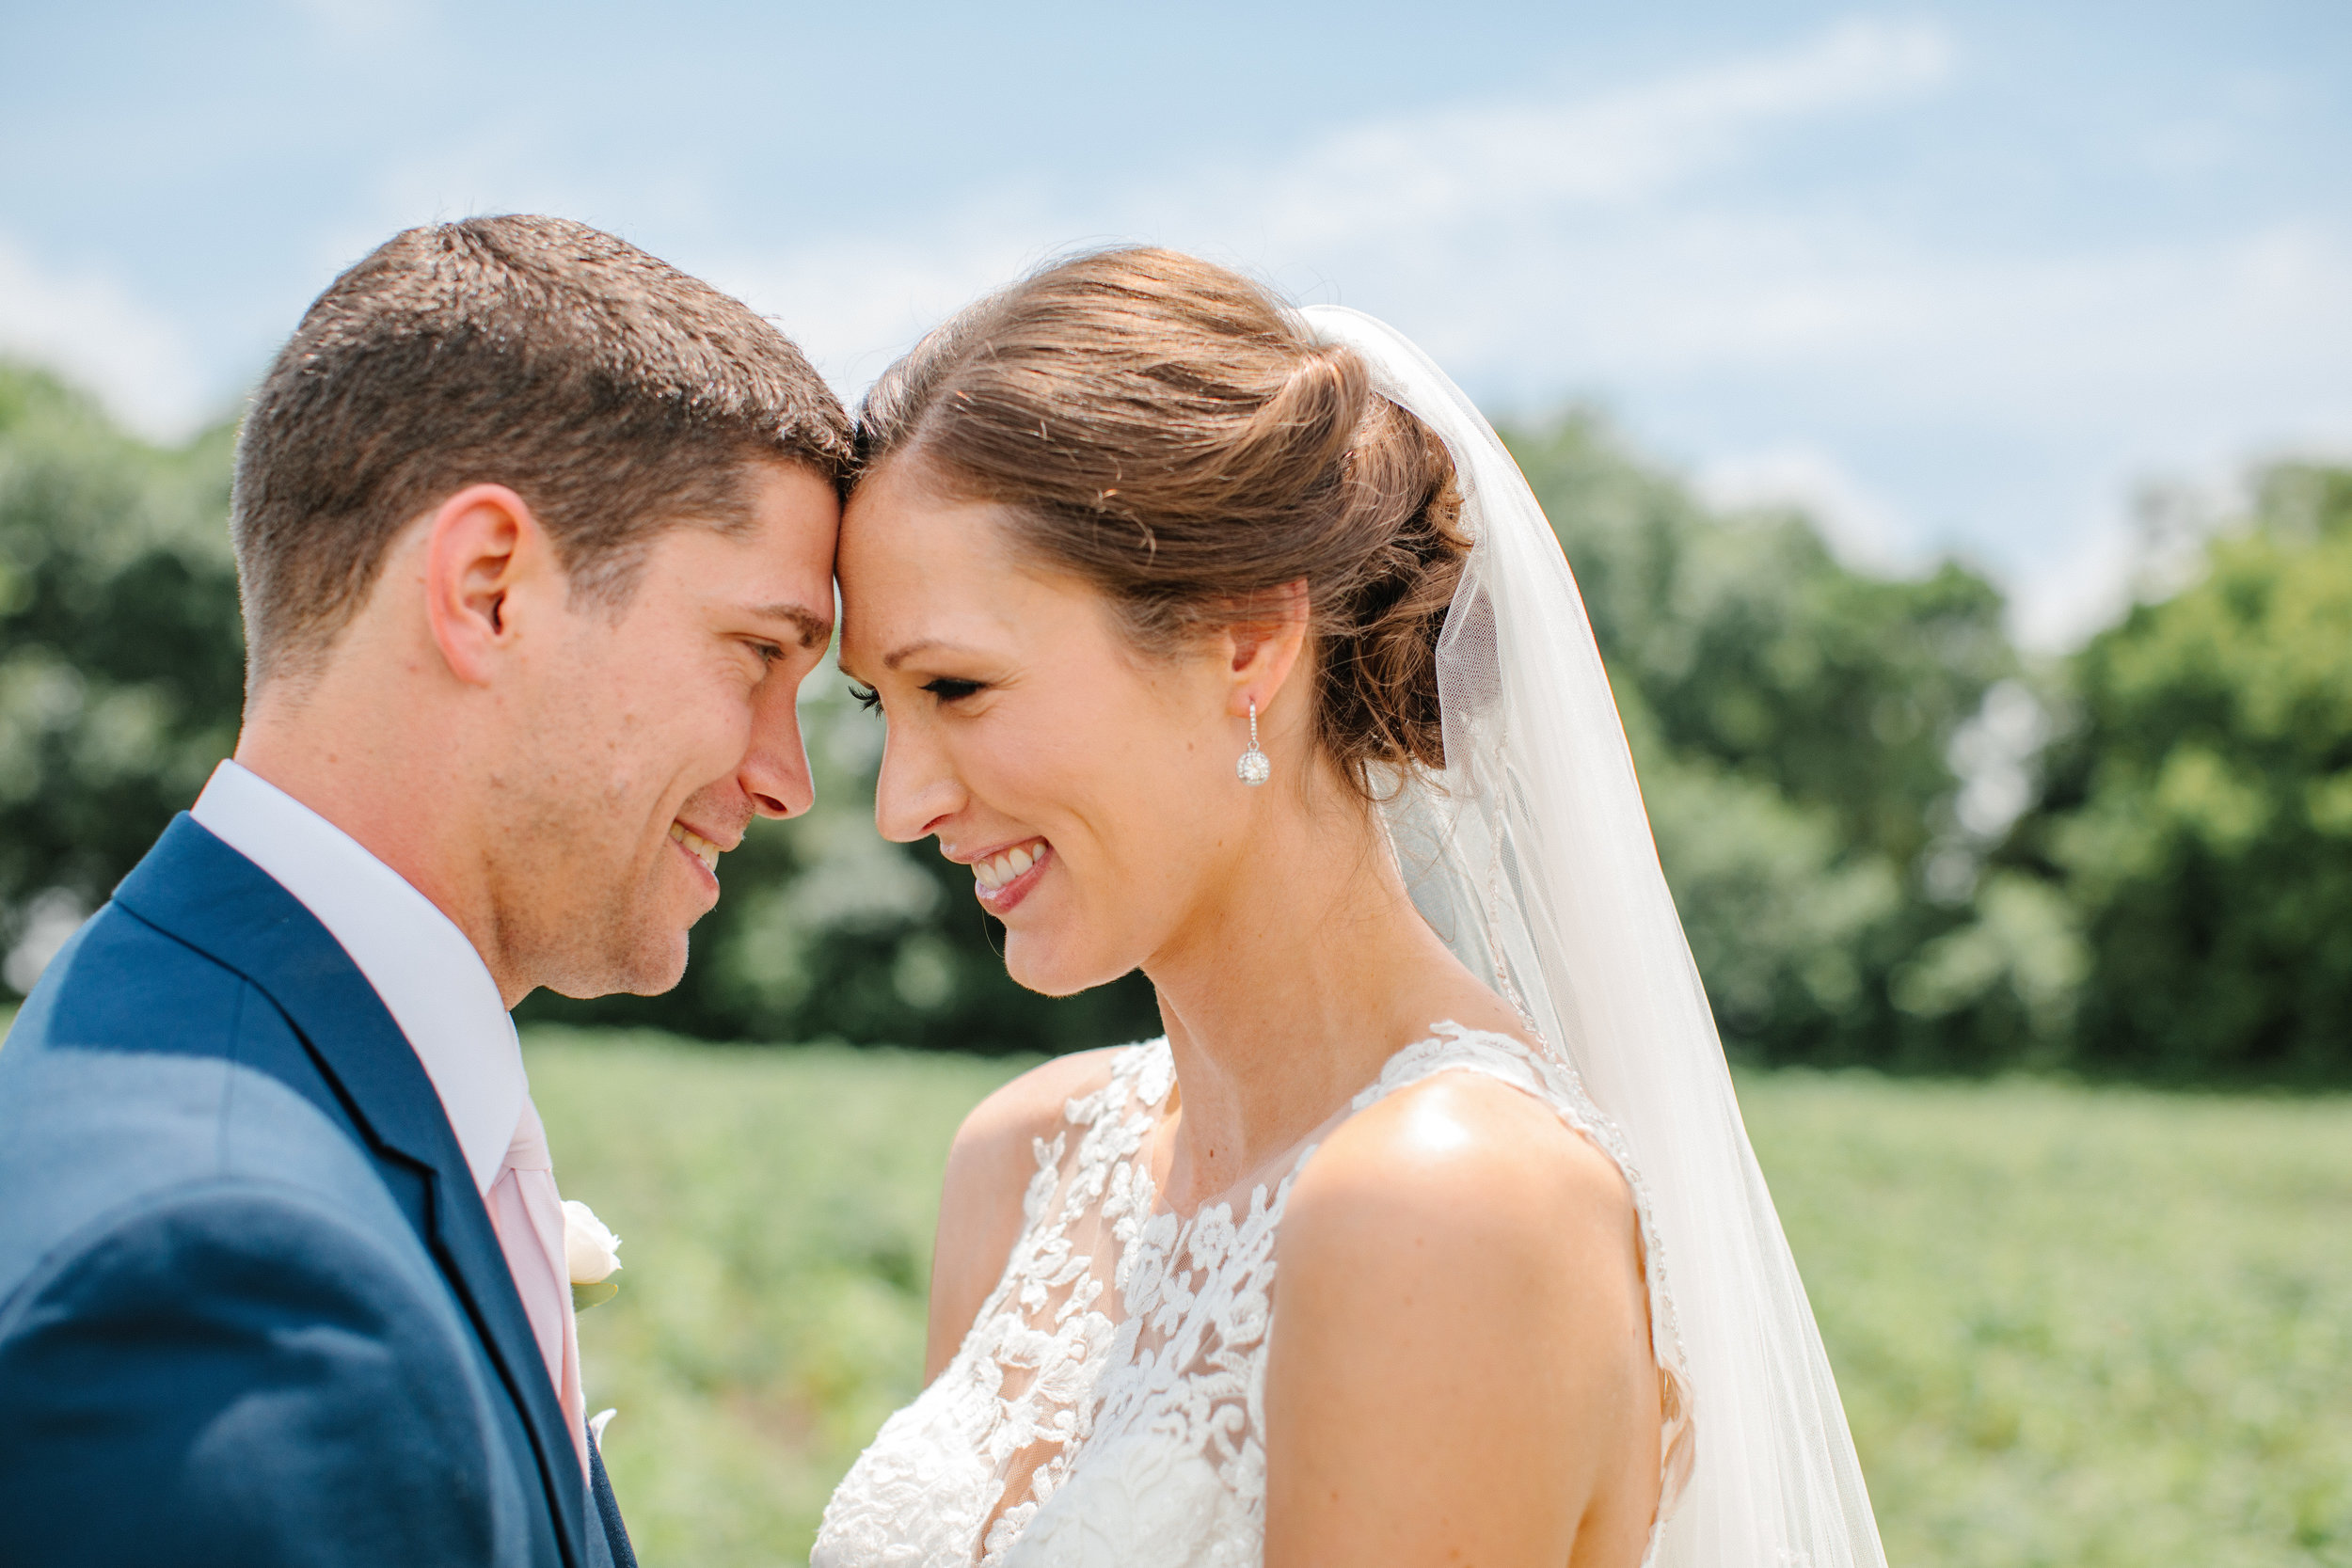 nicole_kyle_west_des_moines_iowa_wedding_photographers_29.jpg